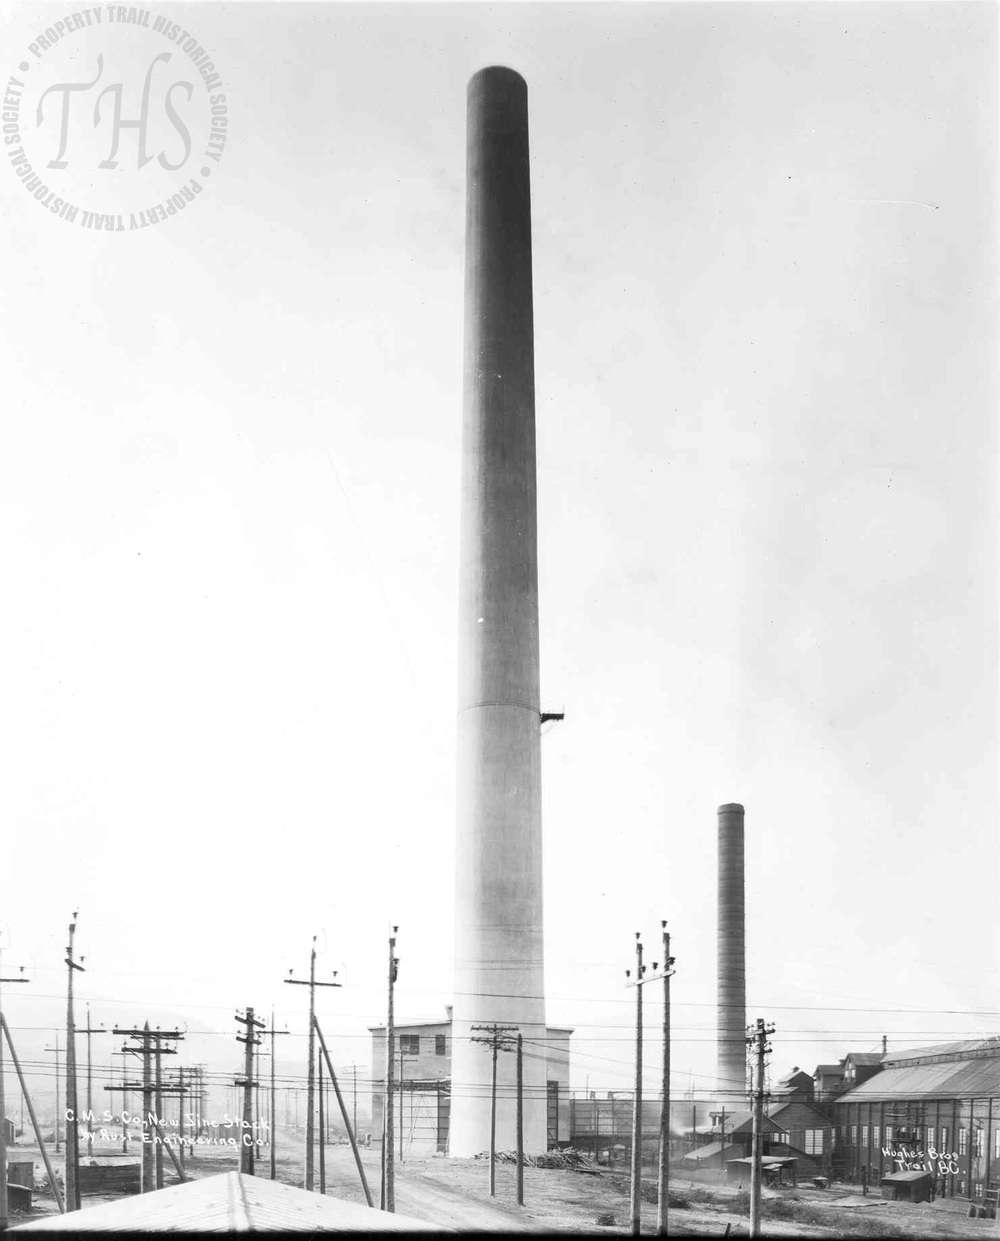 New zinc stack at Trail Smelter (Hughes) - 1920